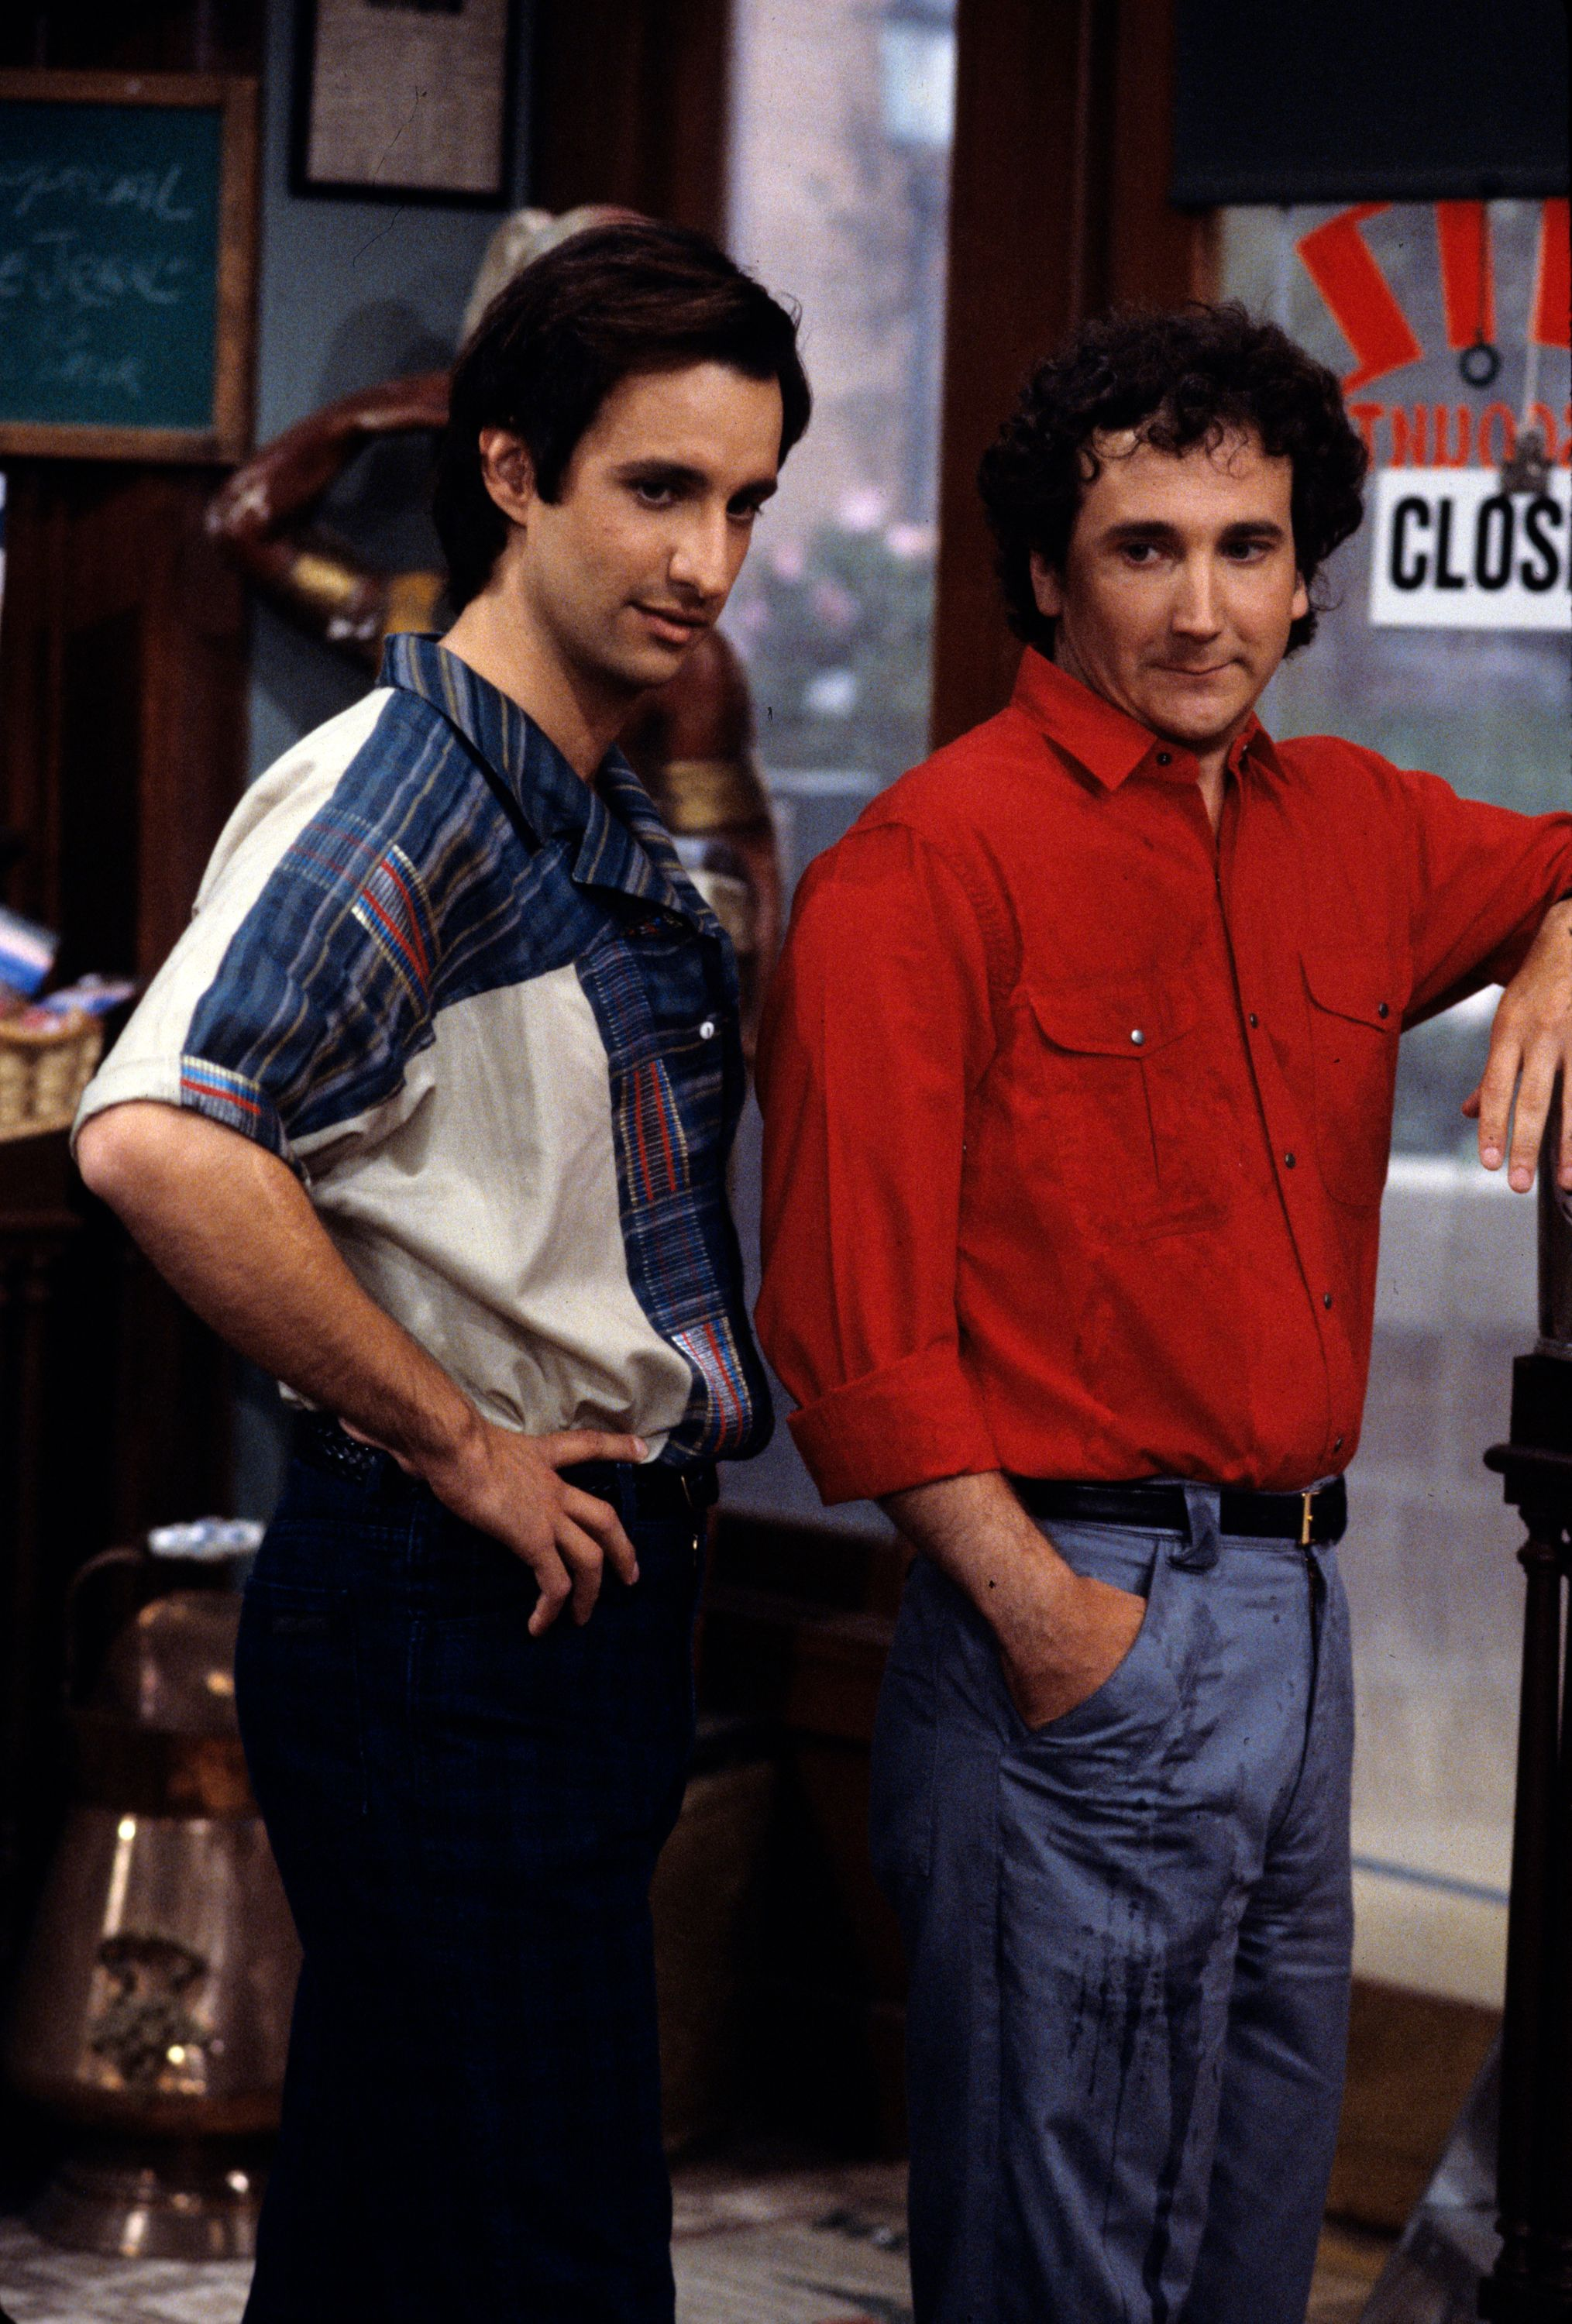 """On an Episode of the Season 2 of """"Perfect Strangers,"""" Balki (Bronson Pinchot) and Larry (Mark Linn-Baker) join a health club on September 24, 1986 